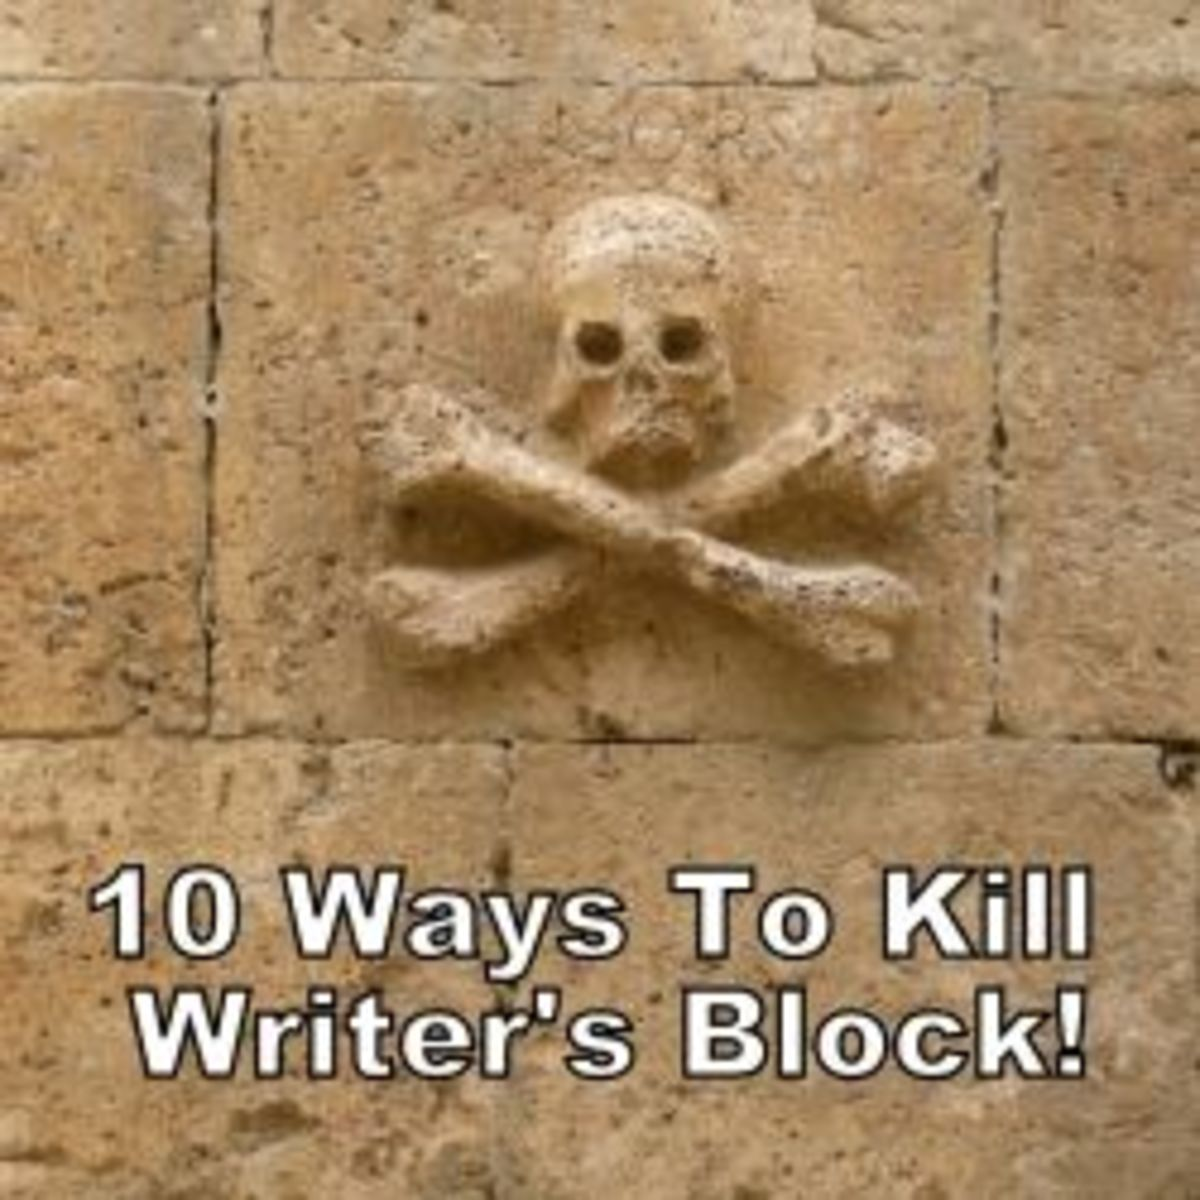 10 Ways to Kill Writer's Block